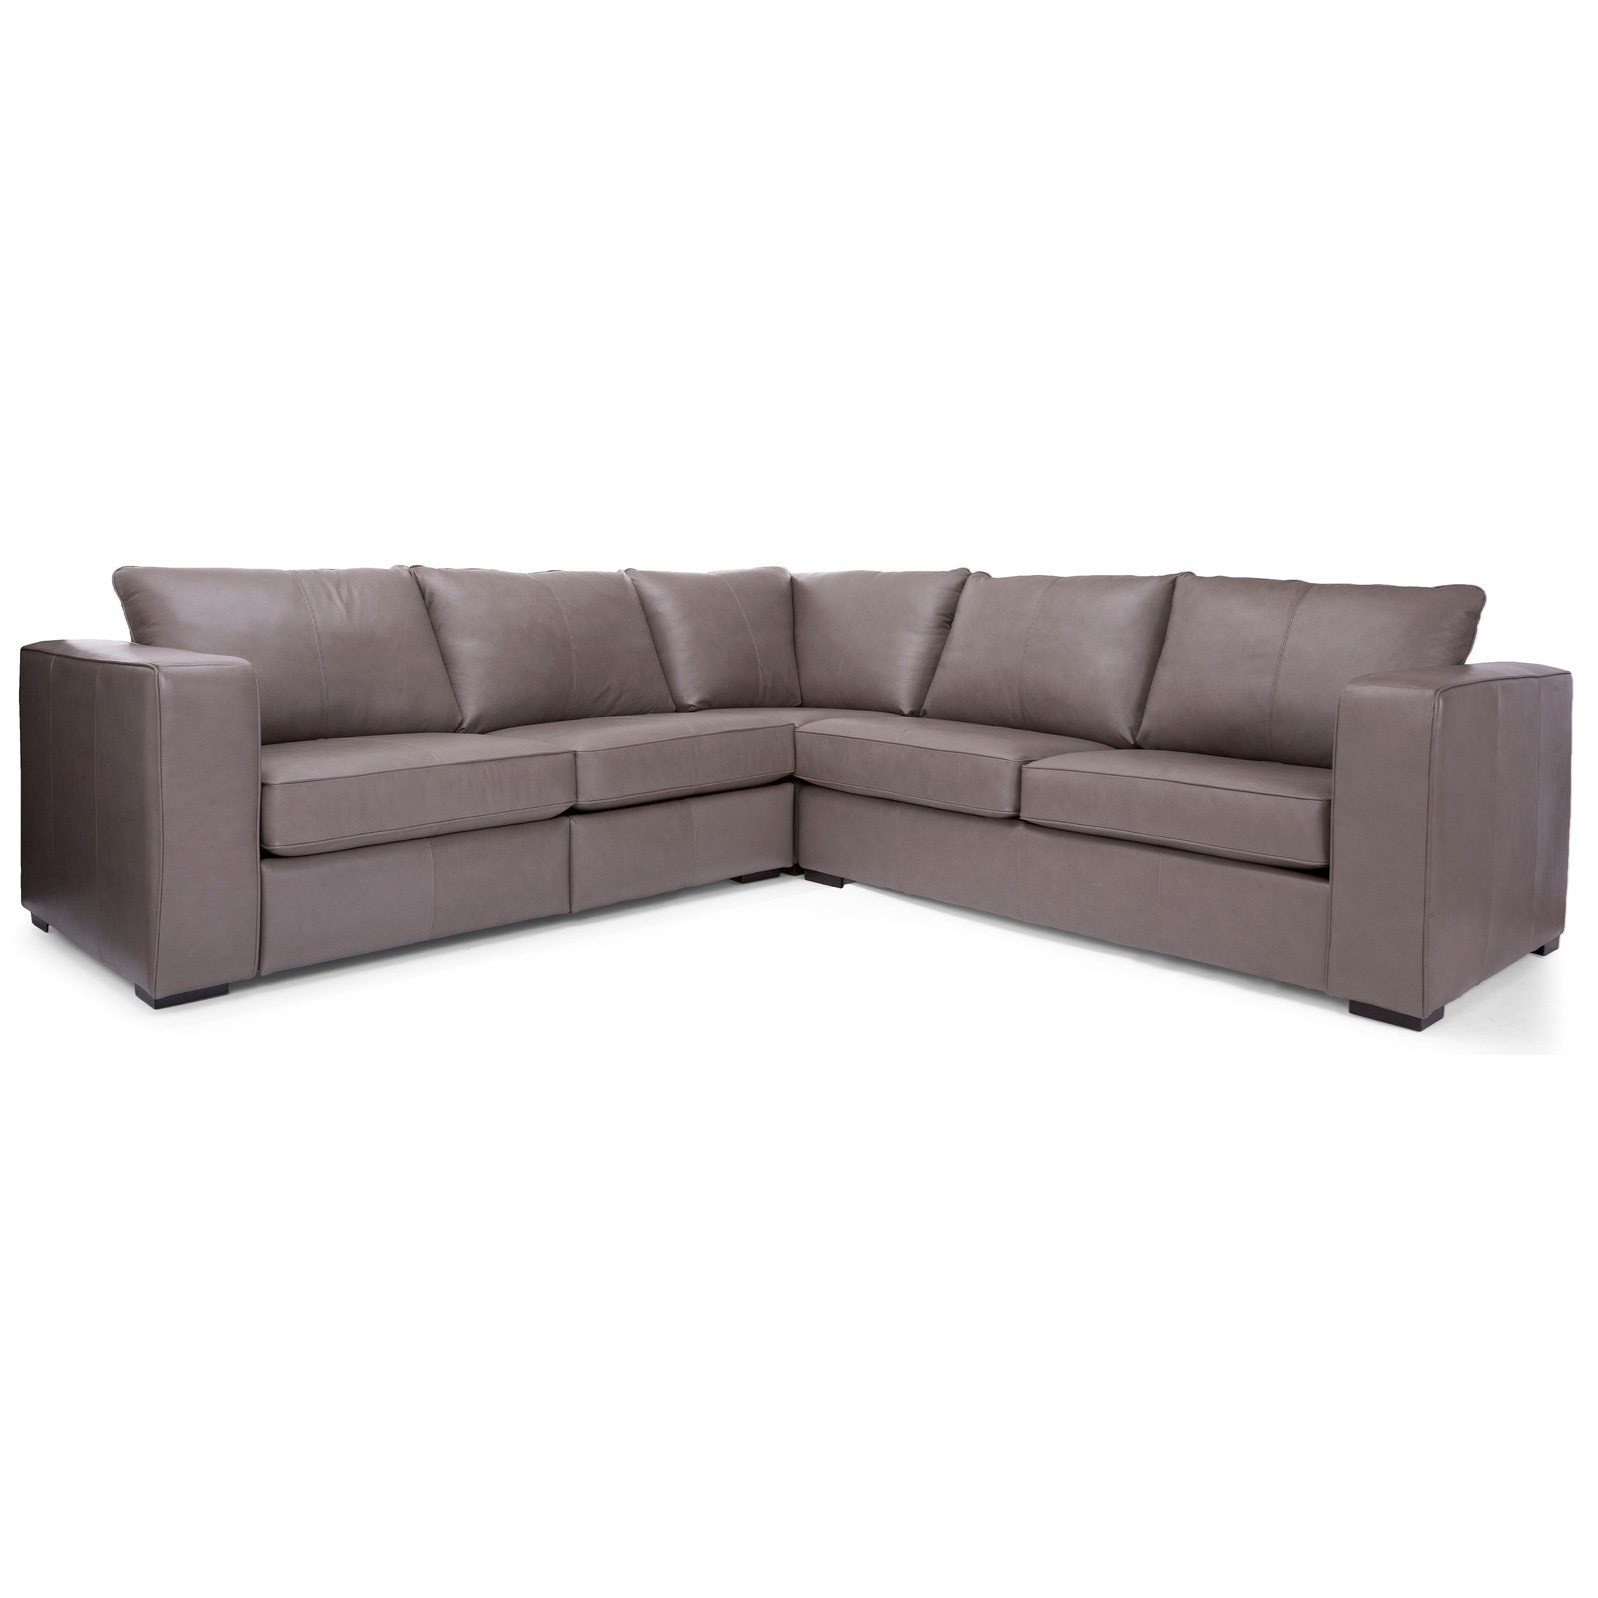 2900 L-Shape Power Reclining Sectional by Decor-Rest at Rooms for Less